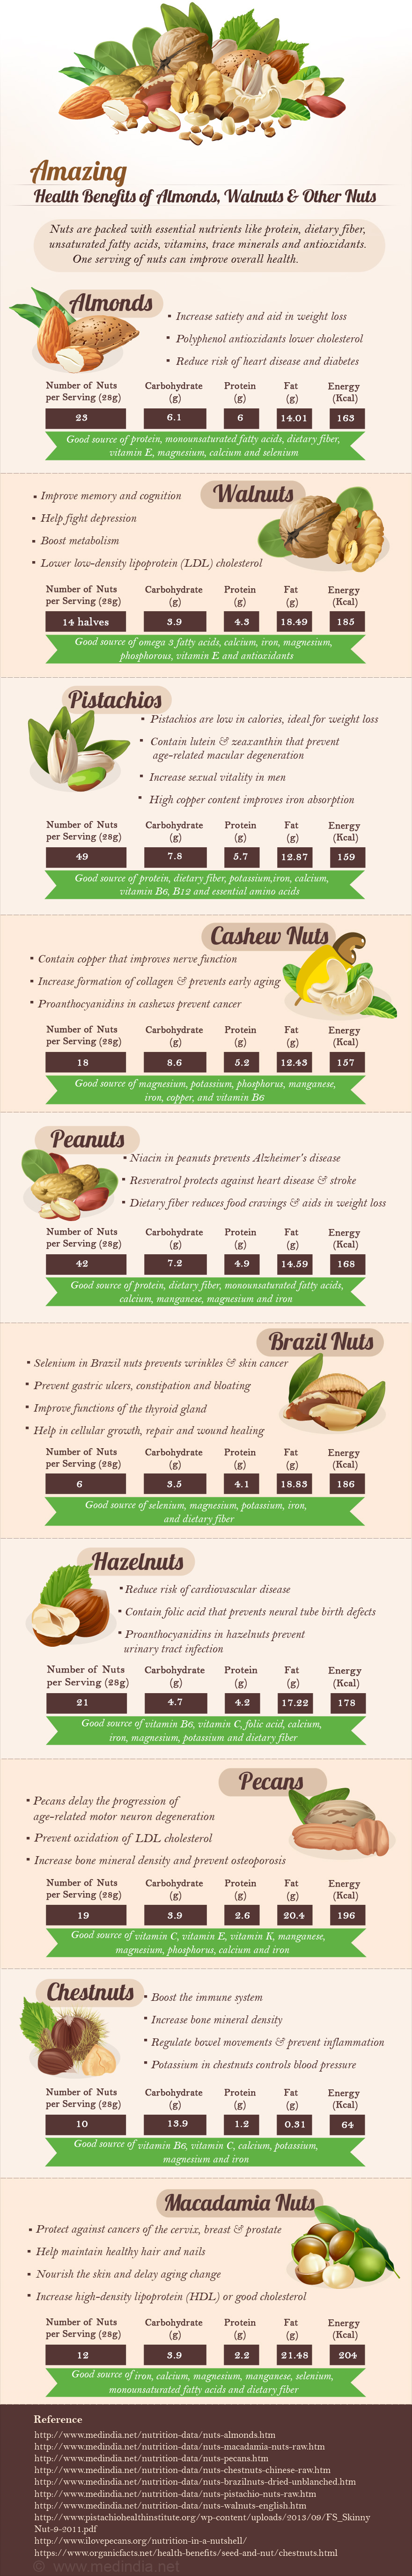 Amazing Health Benefits Of Almonds, Walnuts and Other Nuts